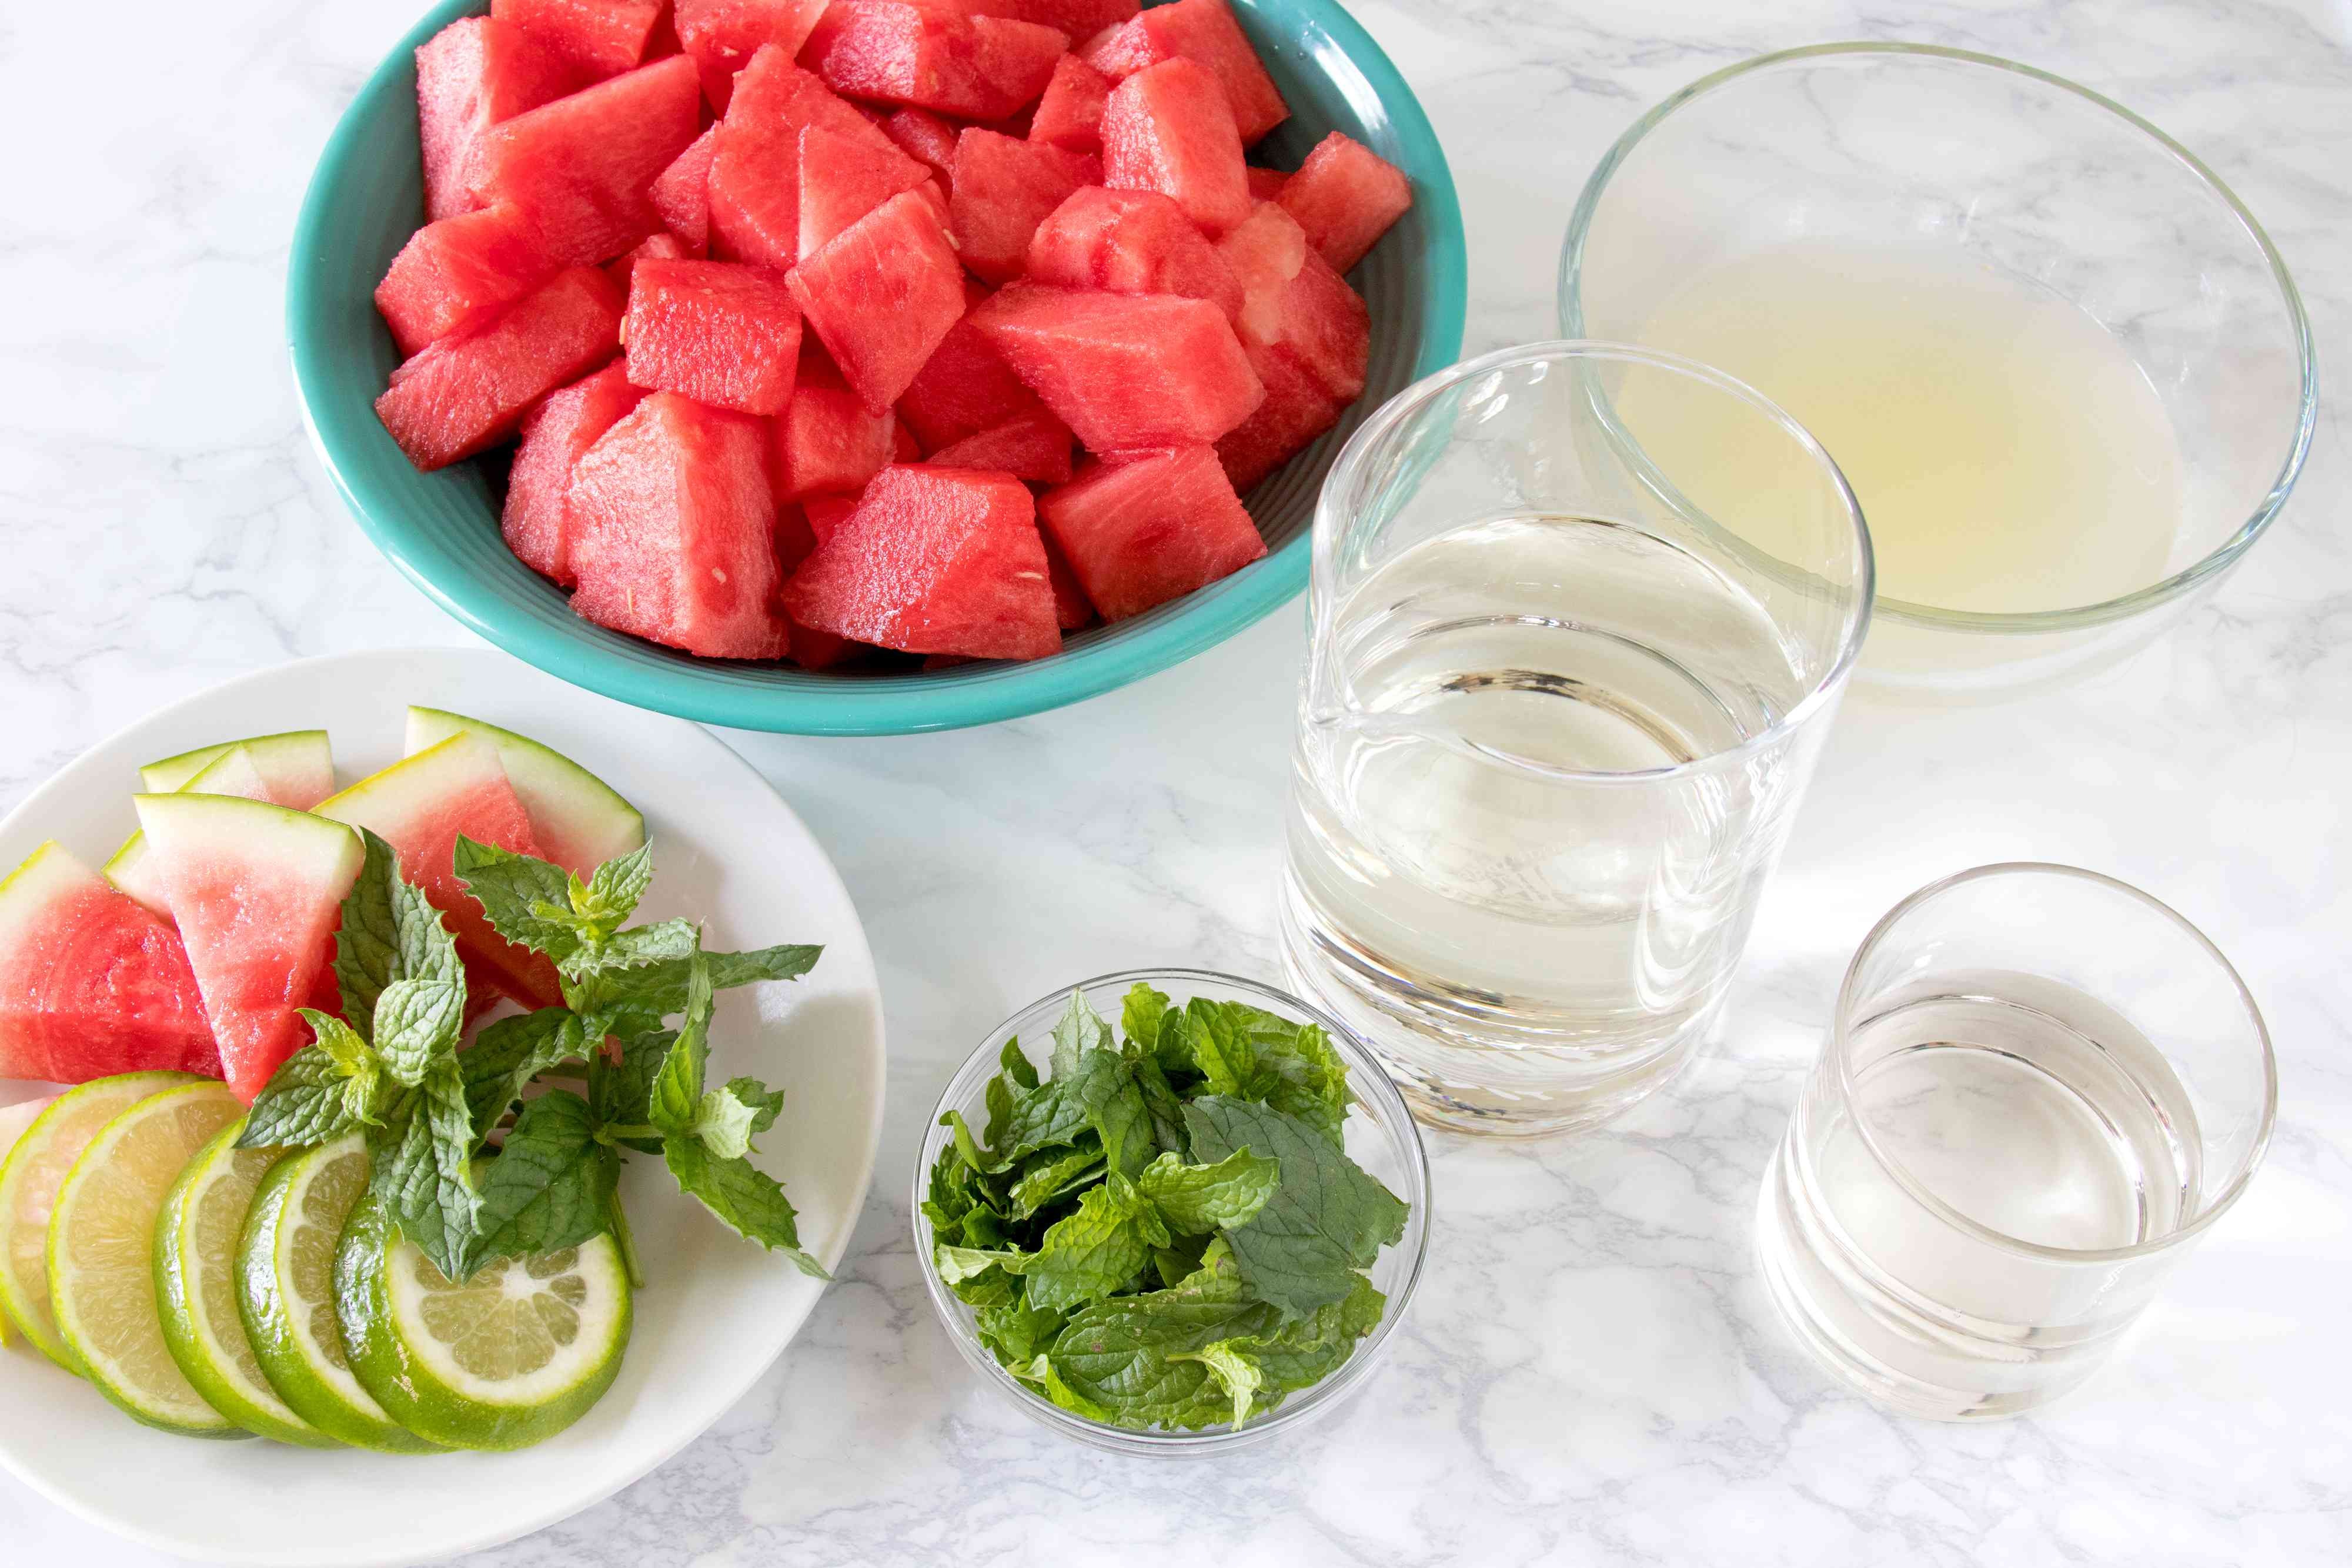 Ingredients for a Pitcher of Watermelon Mojitos